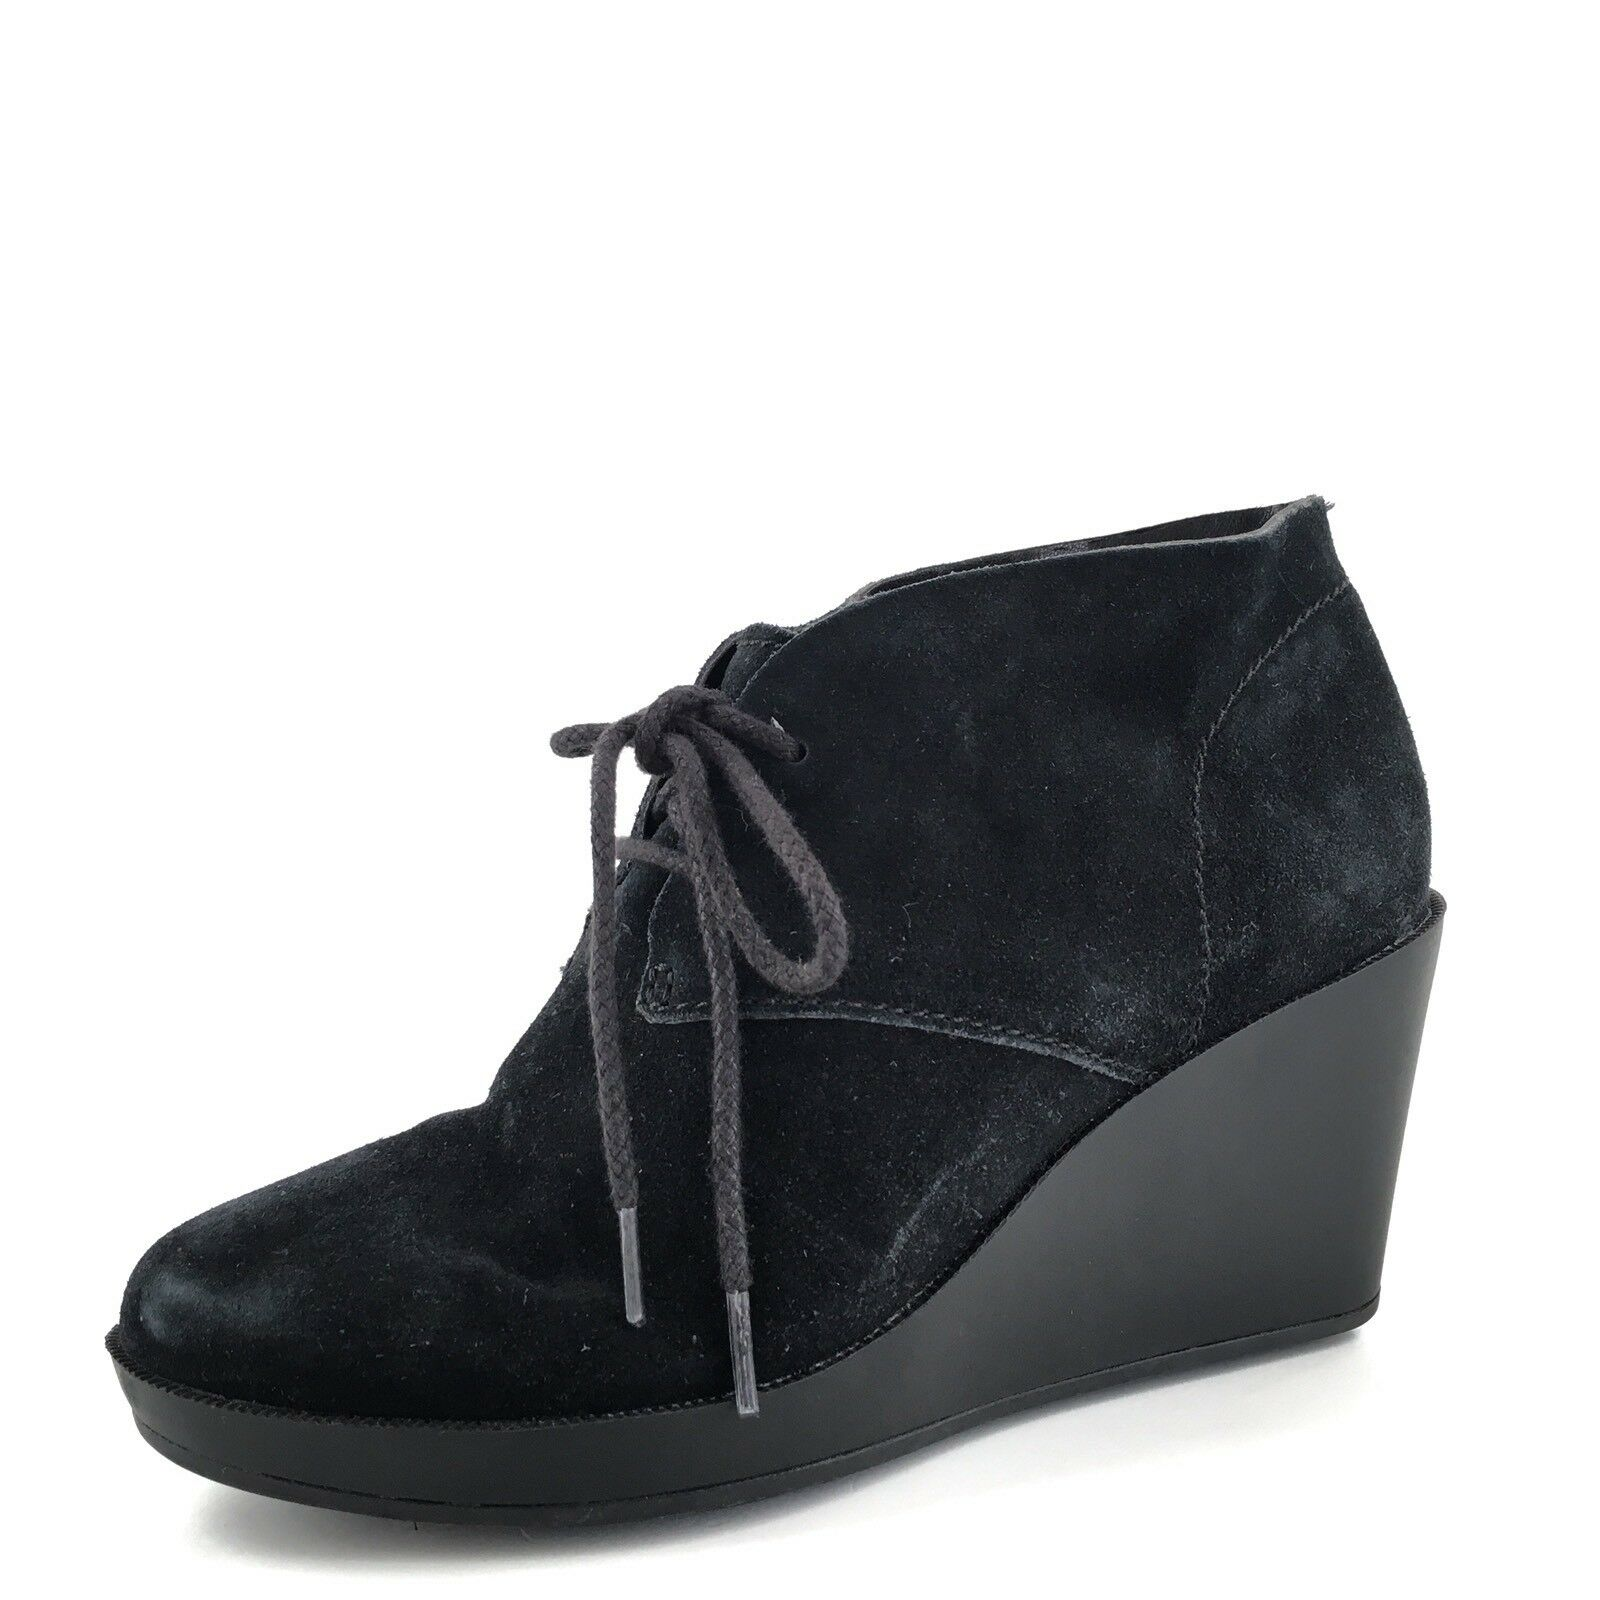 Cole Haan Halley Black Suede Lace Up Ankle Boot Wedges Women's Size 6 M*